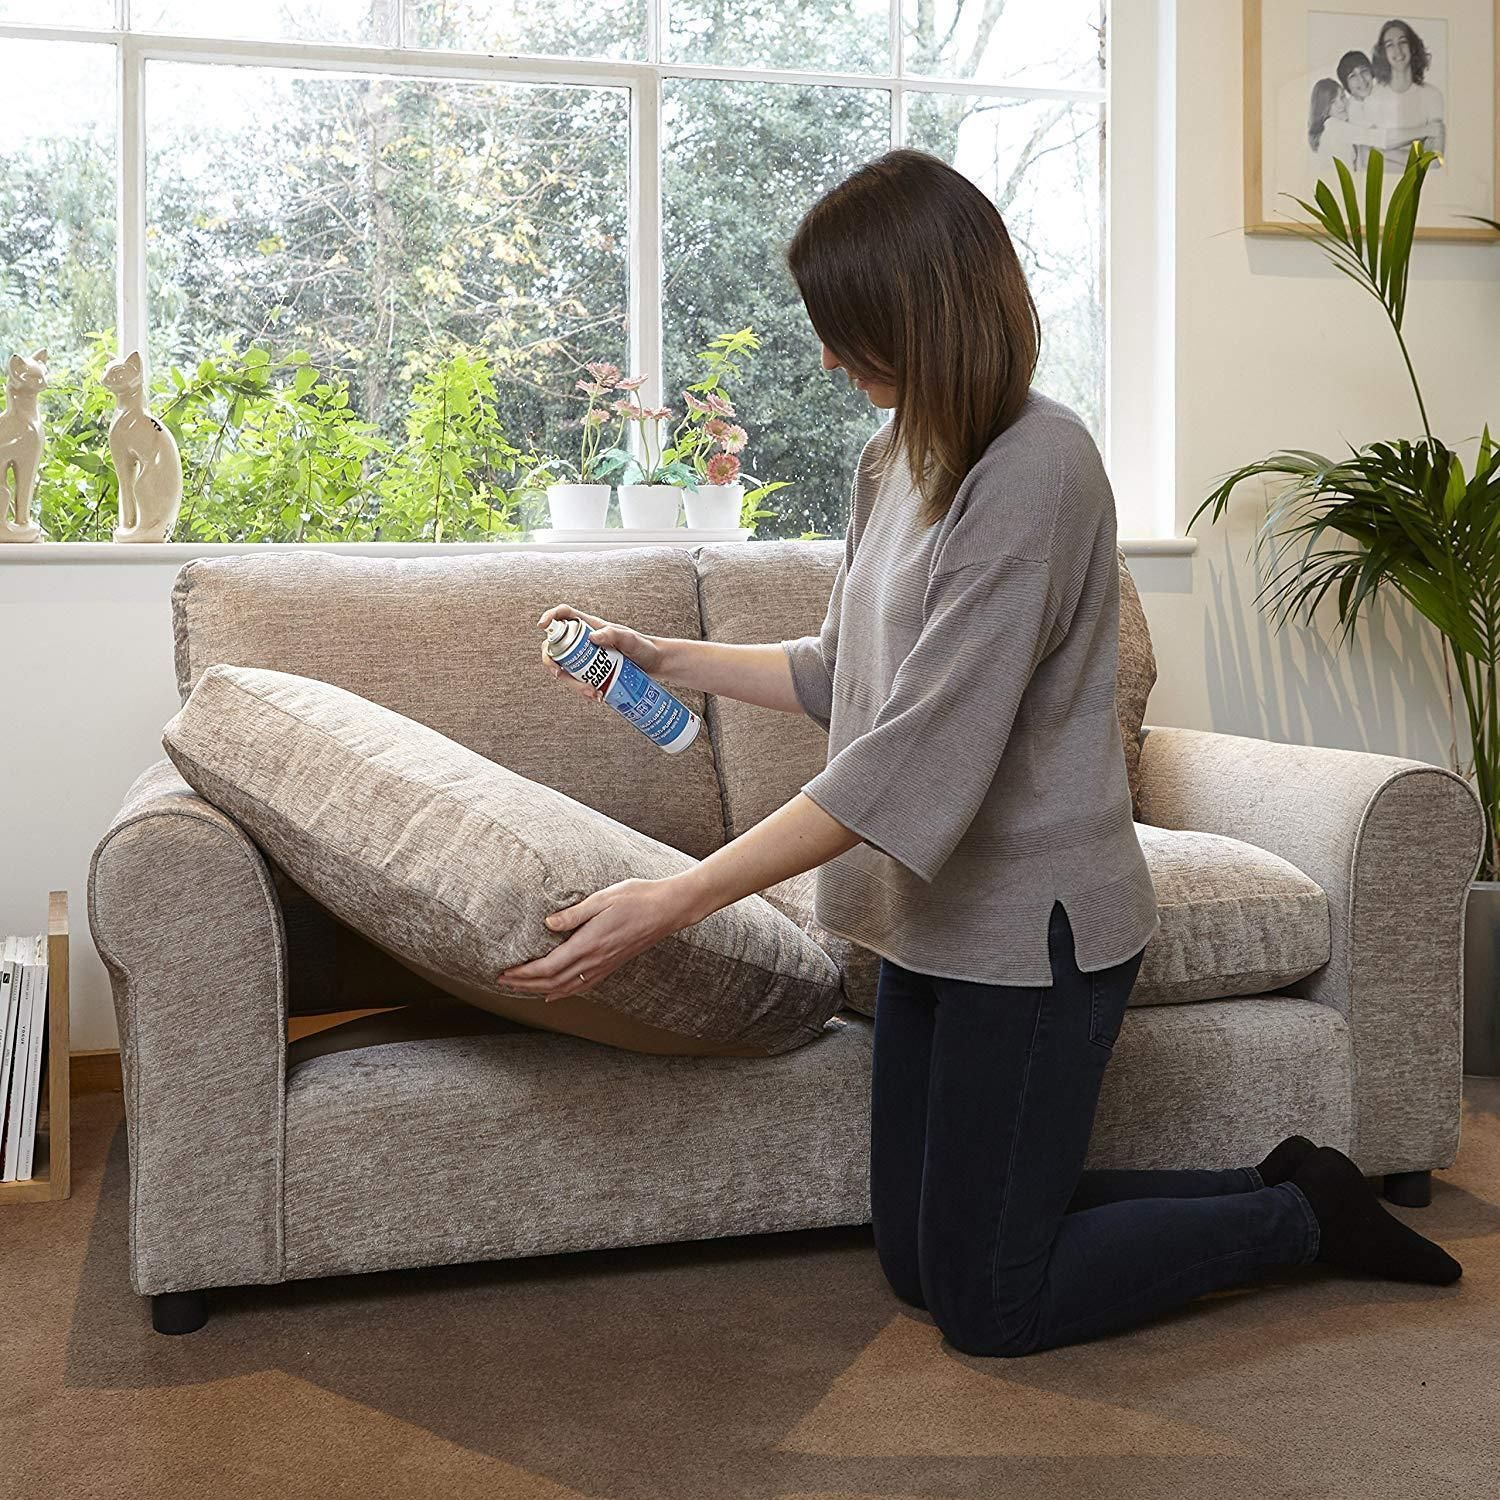 Upholstery Cleaning Services in Kurmond